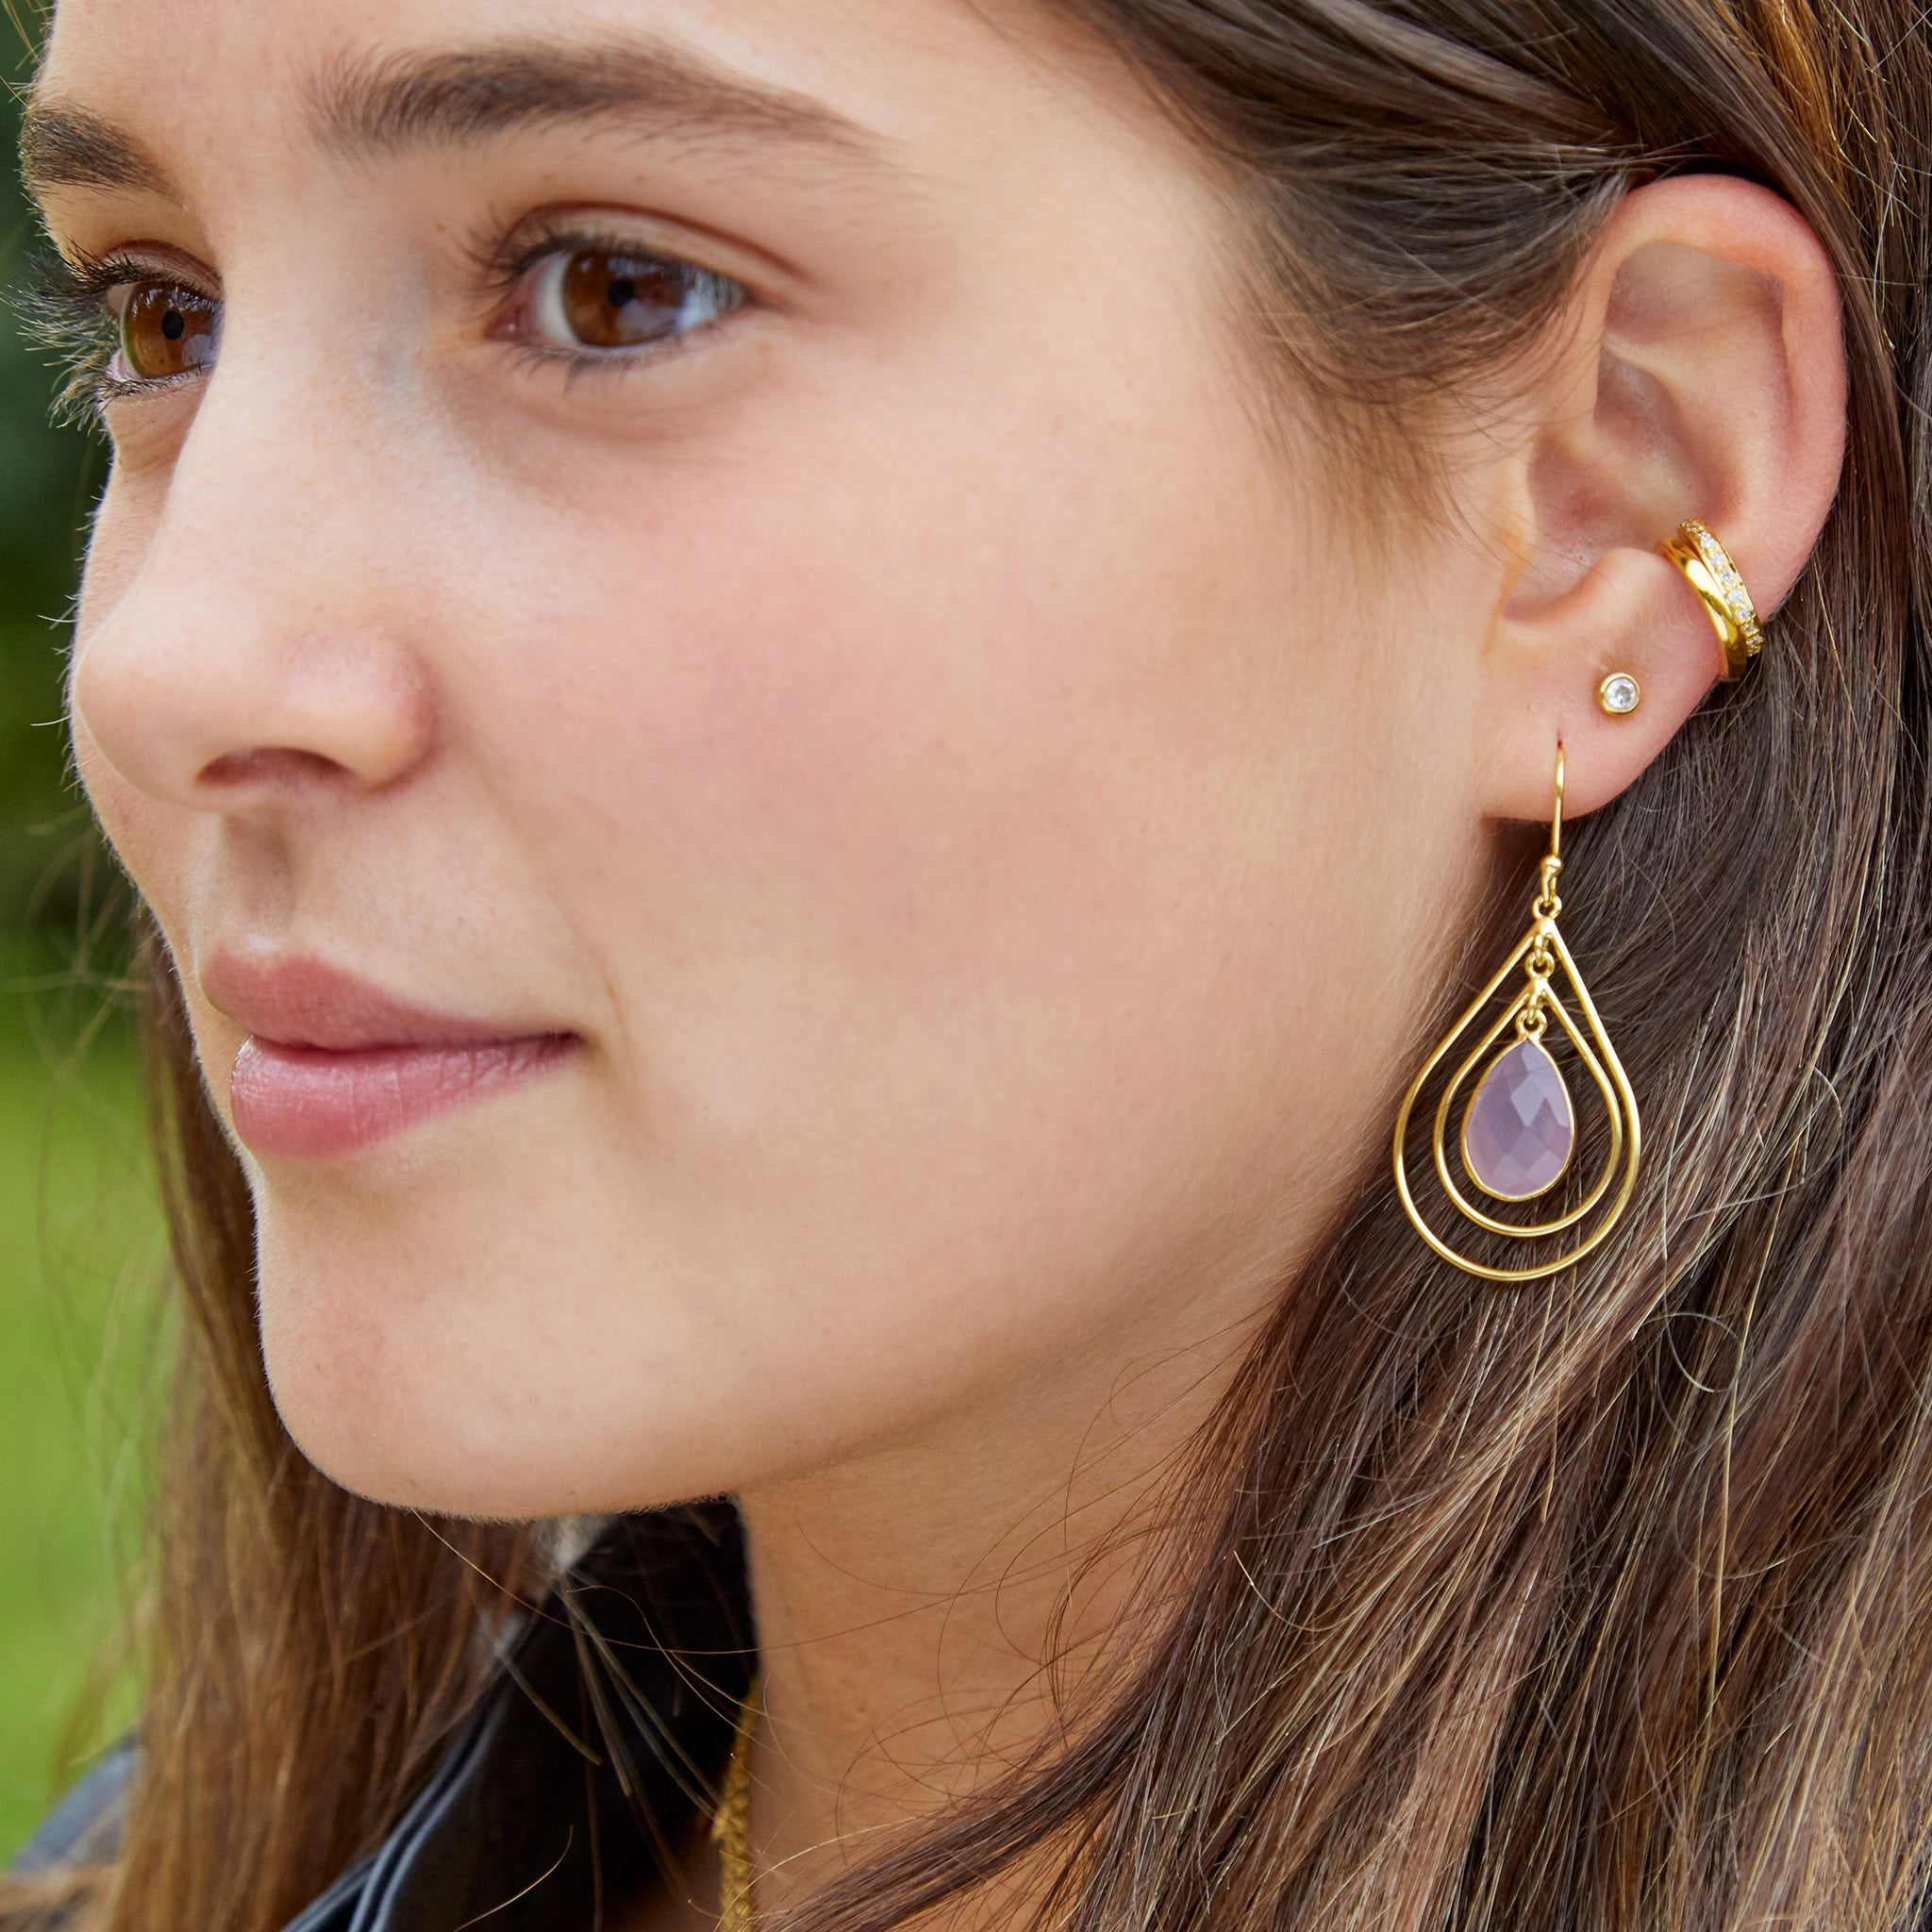 Acer Ear Stud in Gold with Zirconia